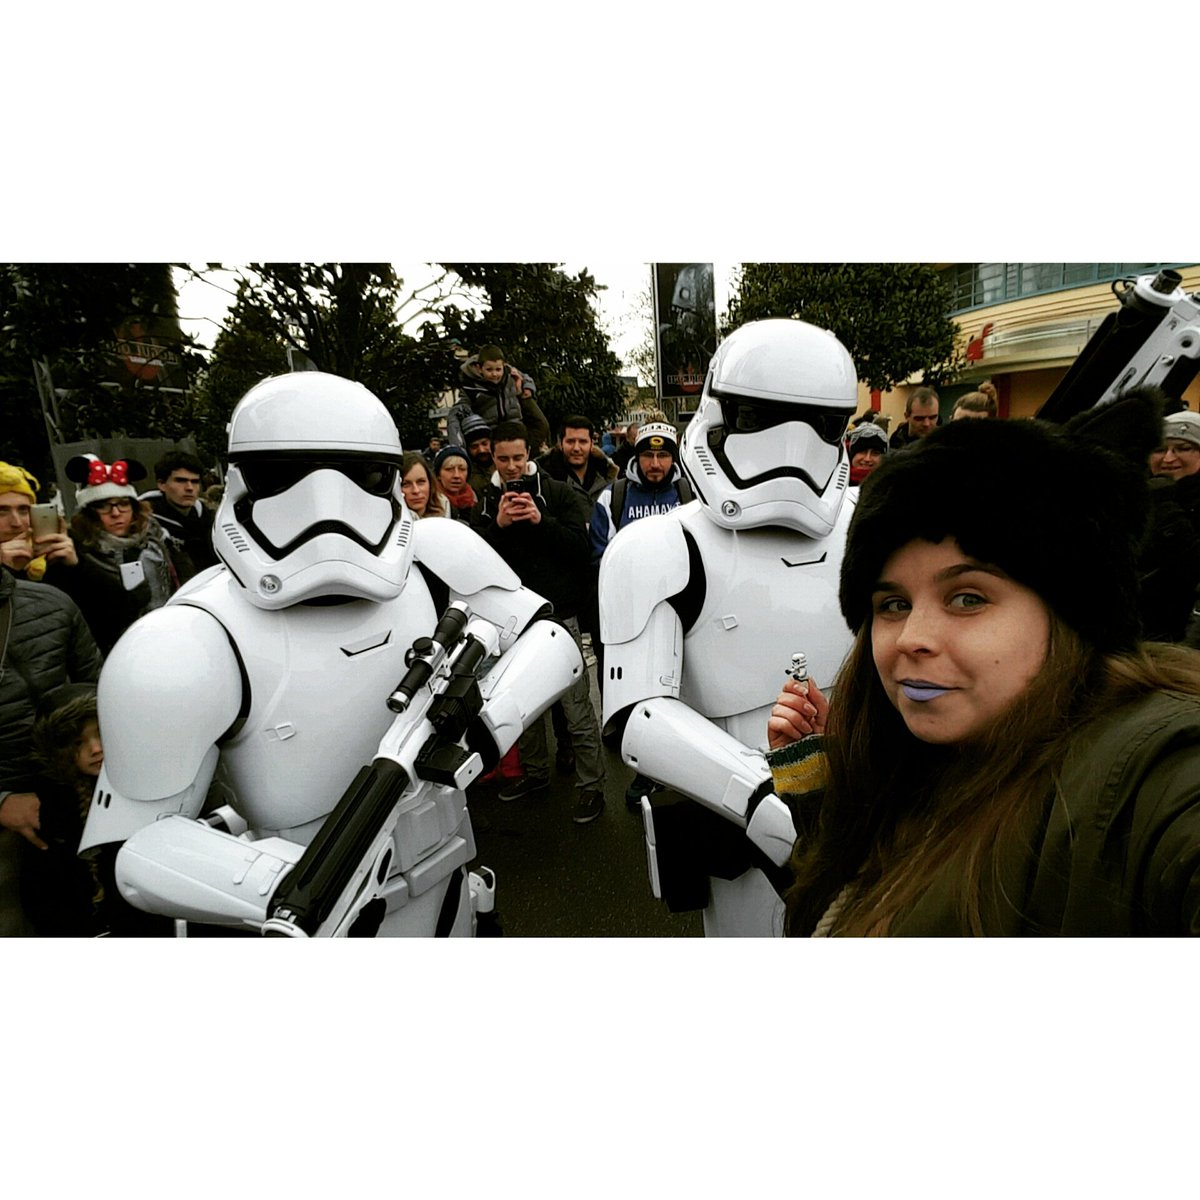 Petit Selfie avec 2 #Stormtrooper  #FaceTheForce @DisneylandParis<br>http://pic.twitter.com/UiDyoYV8OF